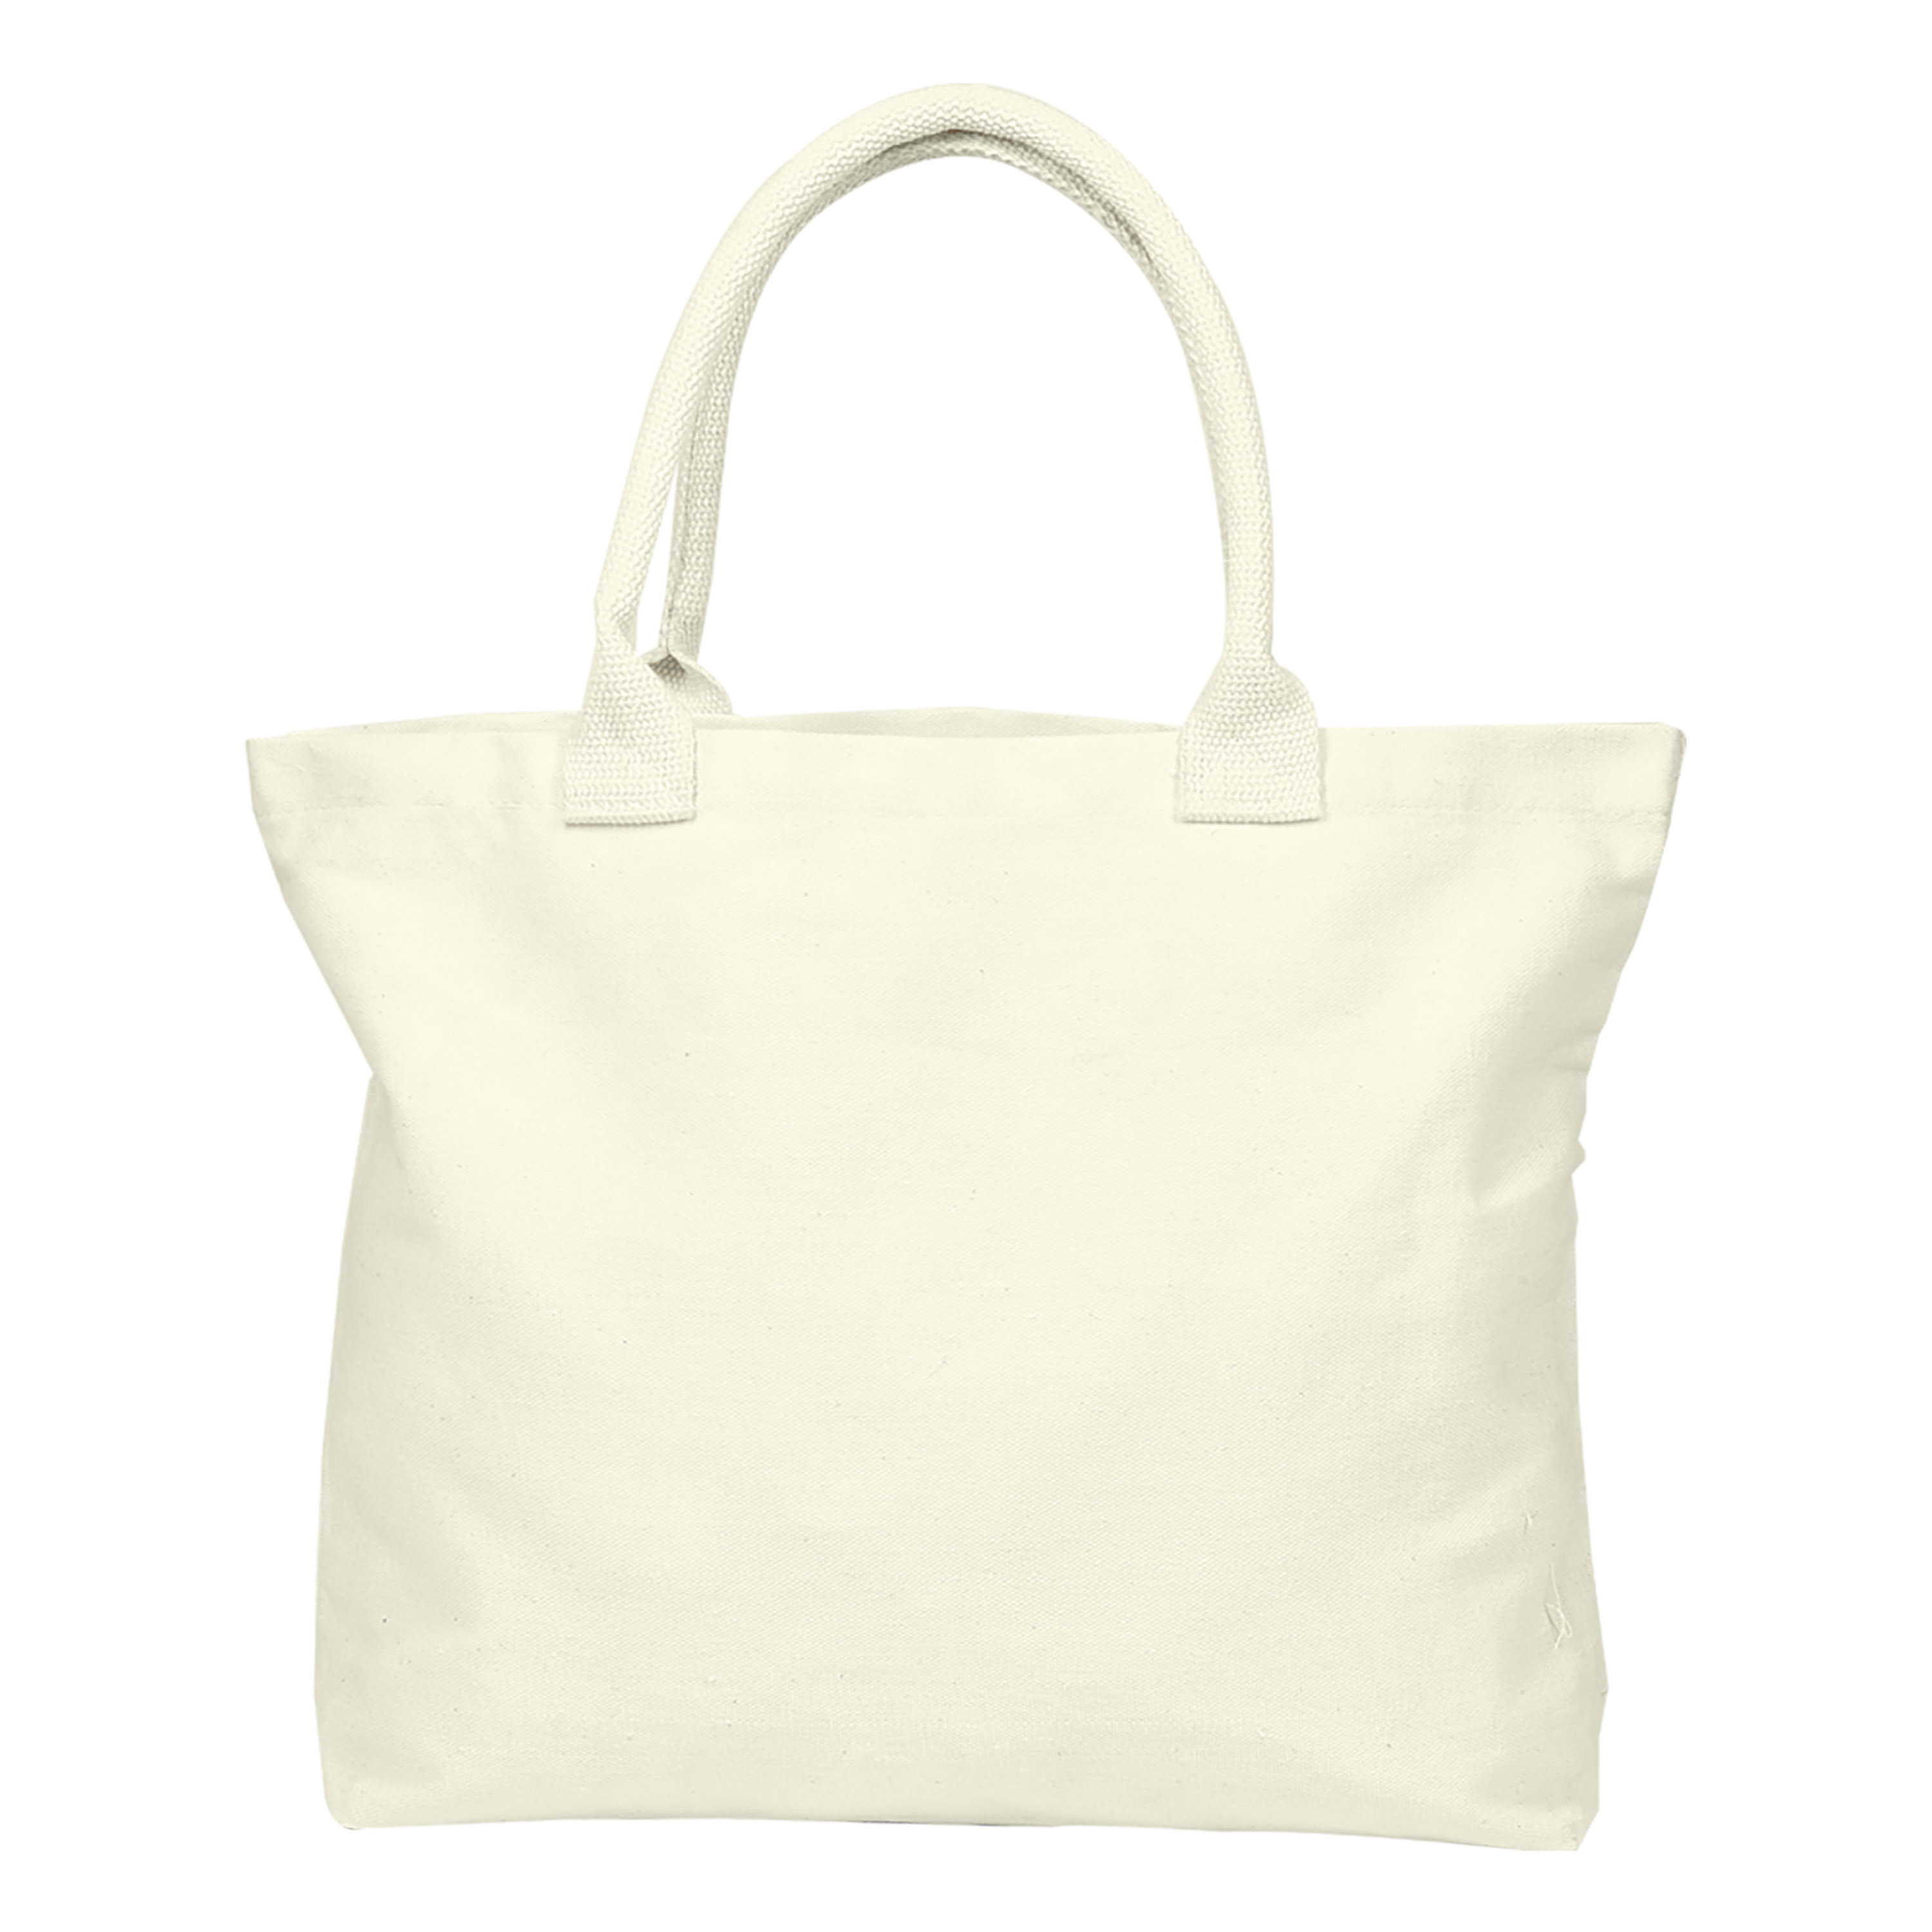 CALICO SHOPPER NO GUSSET - 1 Colour Print, From $3.44